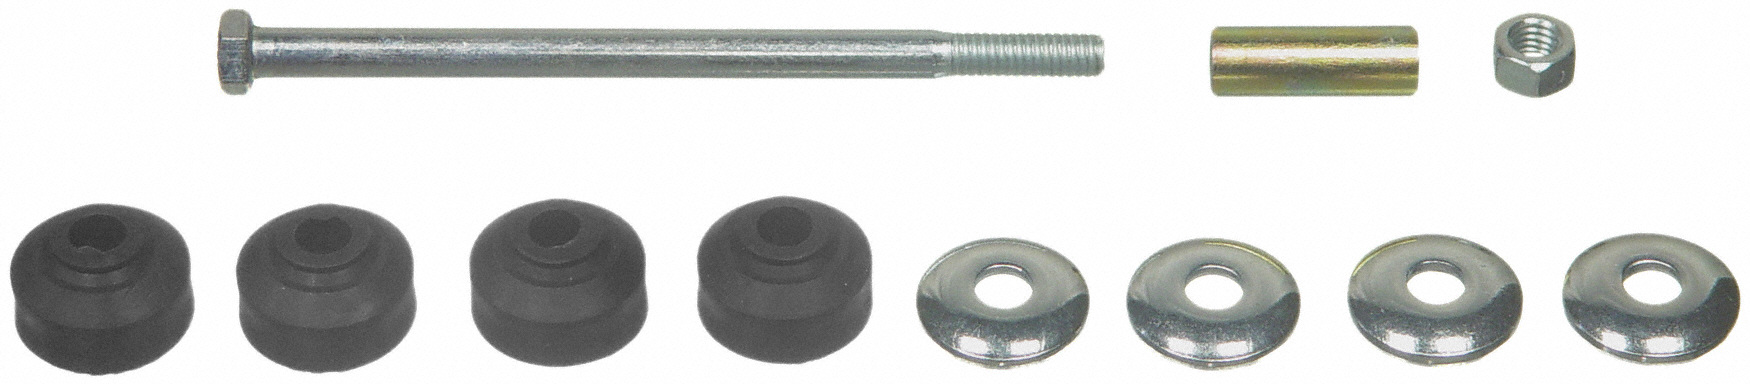 K5255 Moog Chassis Stabilizer Bar Link Kit OE Replacement